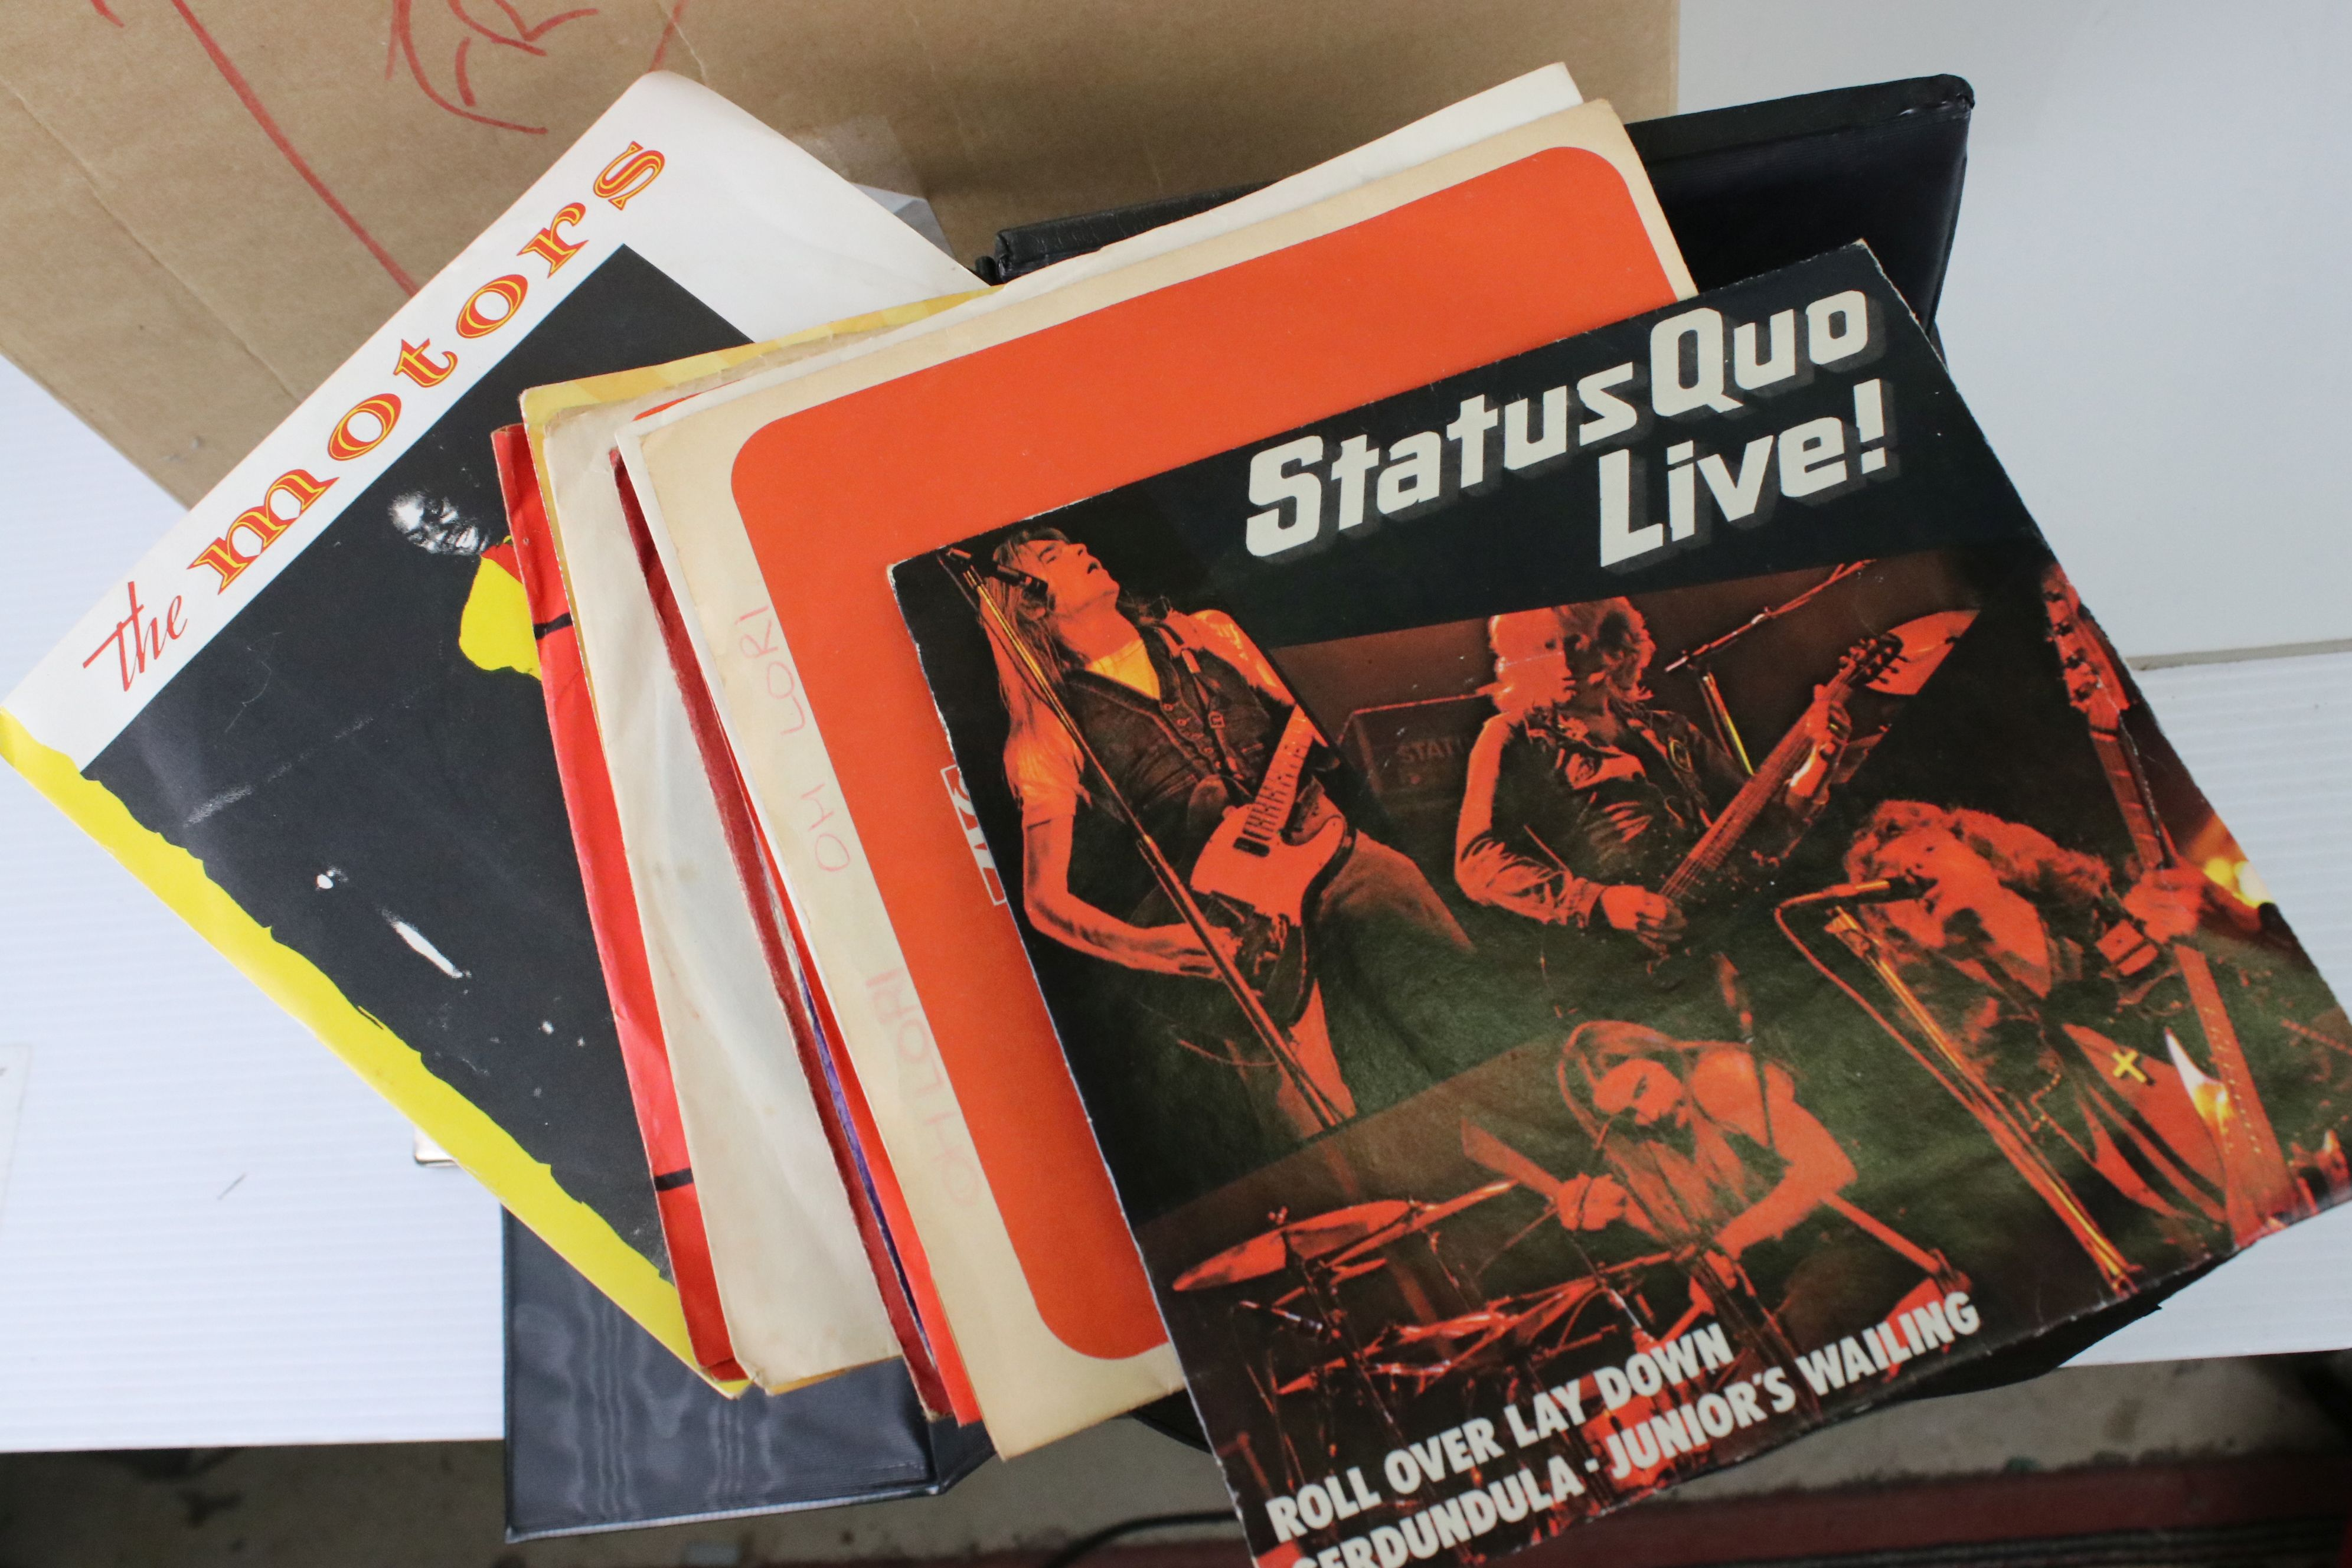 """Vinyl - Pop collection of approx 40 LP's and 100 7"""" singles to include Dire Straits, Paul Young, Cat - Image 5 of 6"""